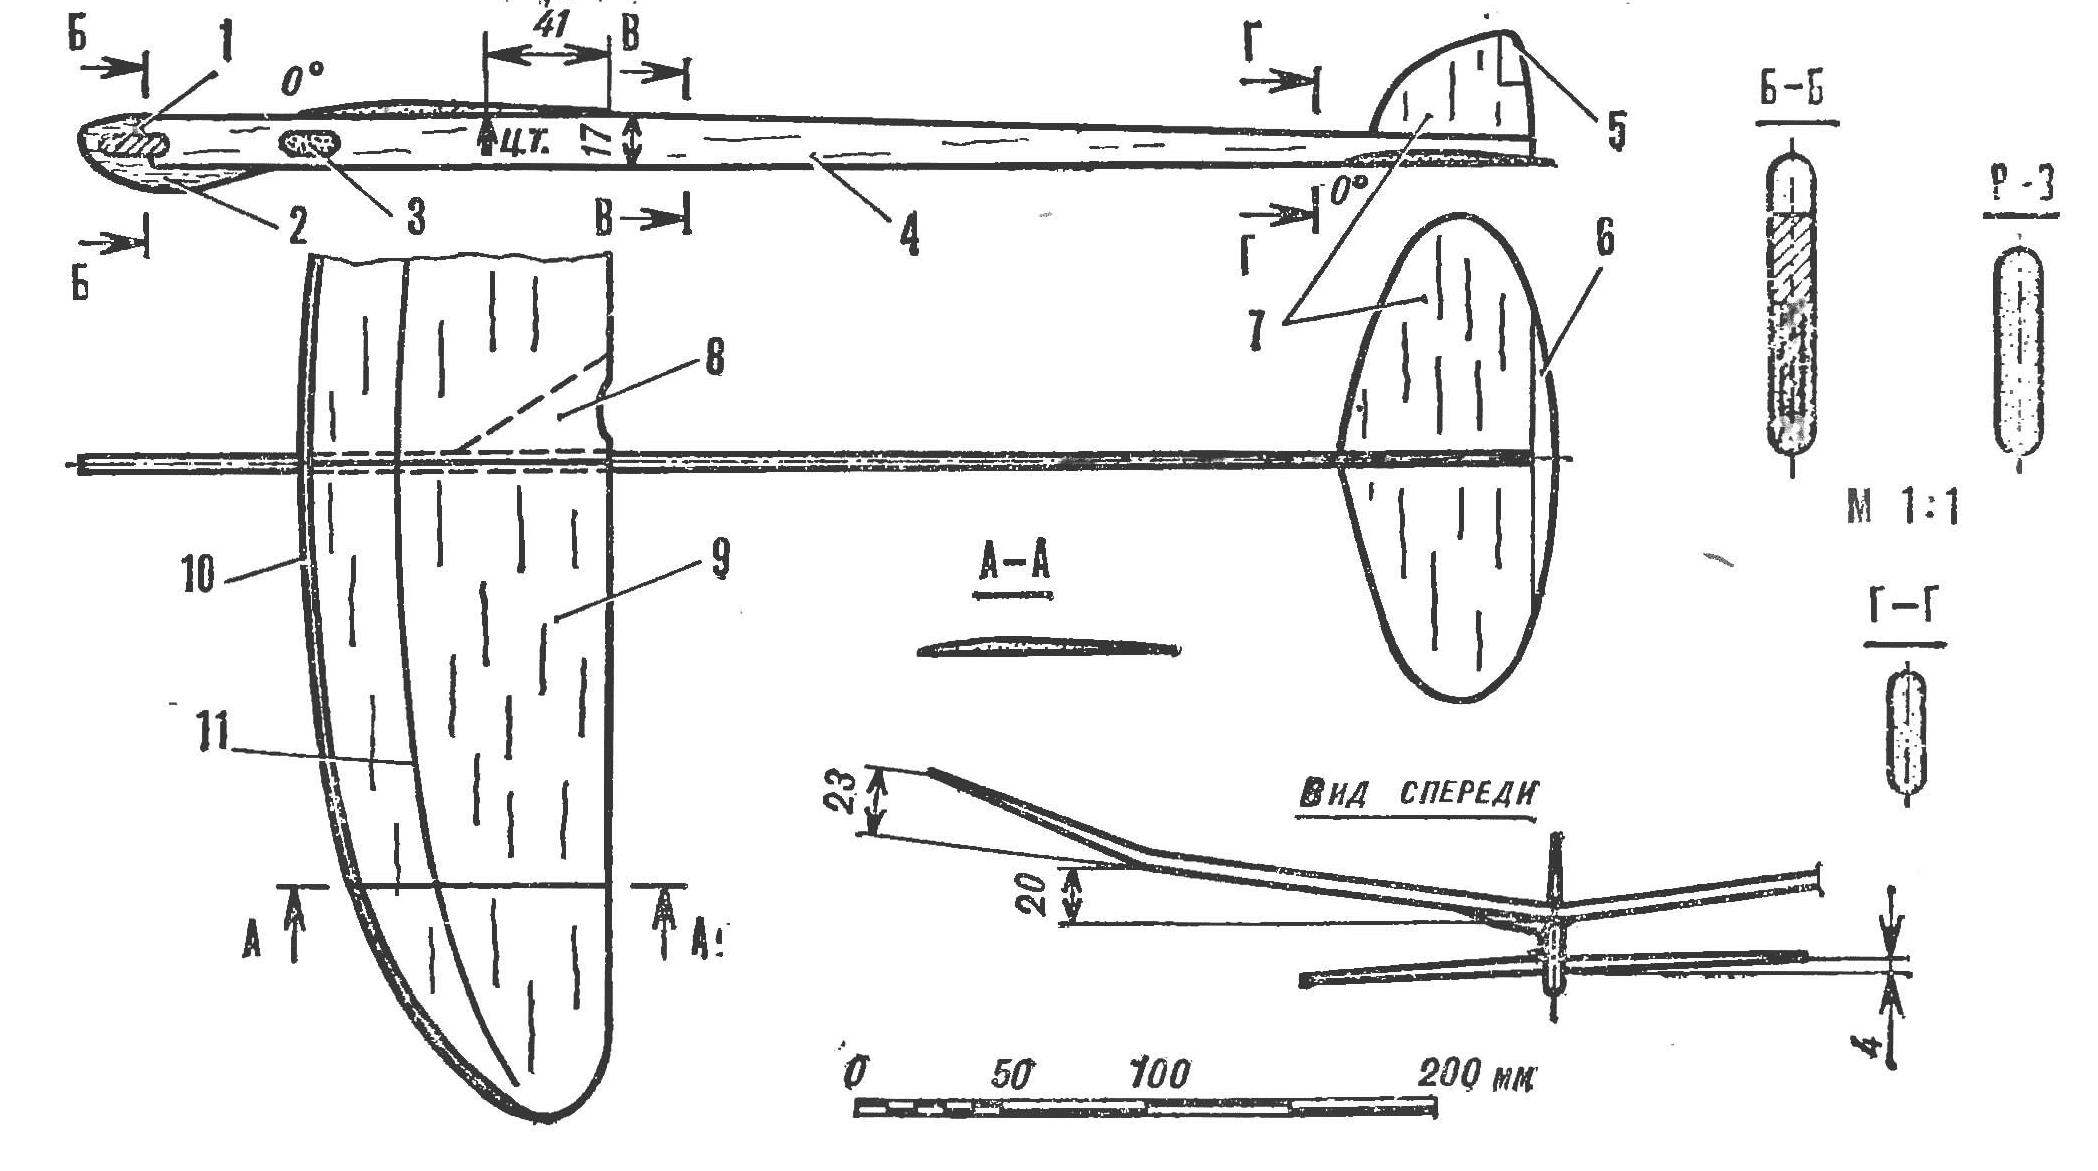 Fig. 1. The first option is throwing the model glider